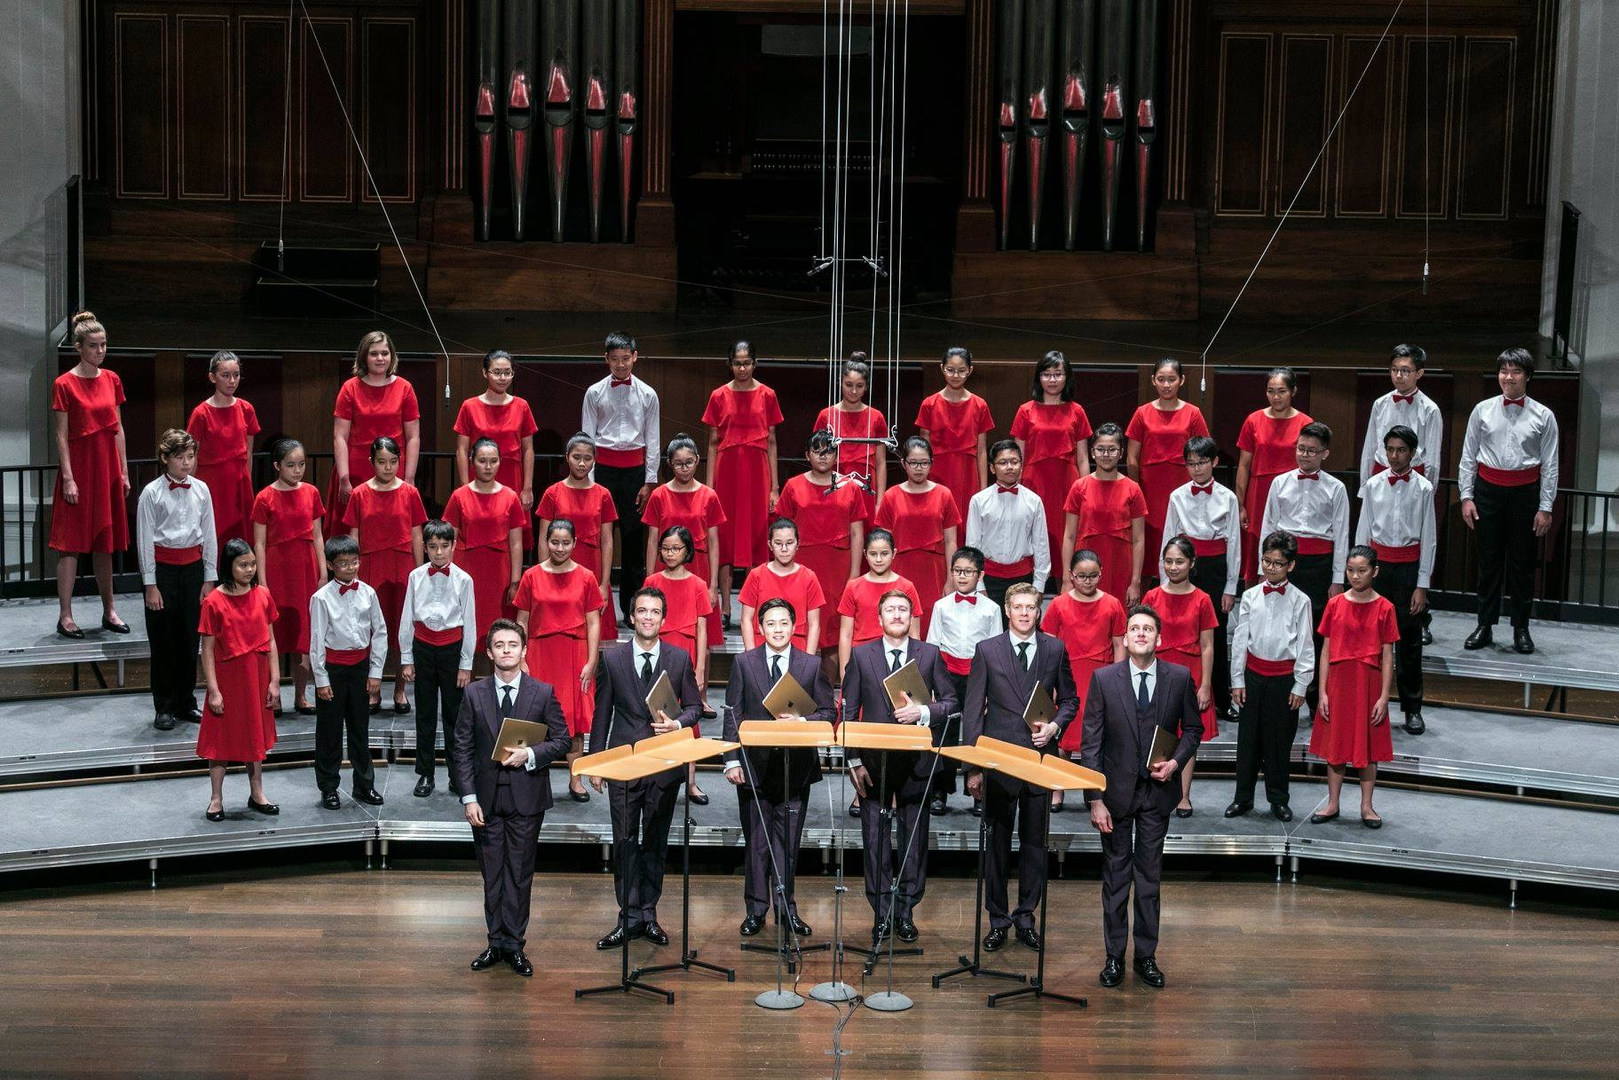 18/02/24 (1/2) - The King's Singers X Singapore Symphony Children's Choir Concert